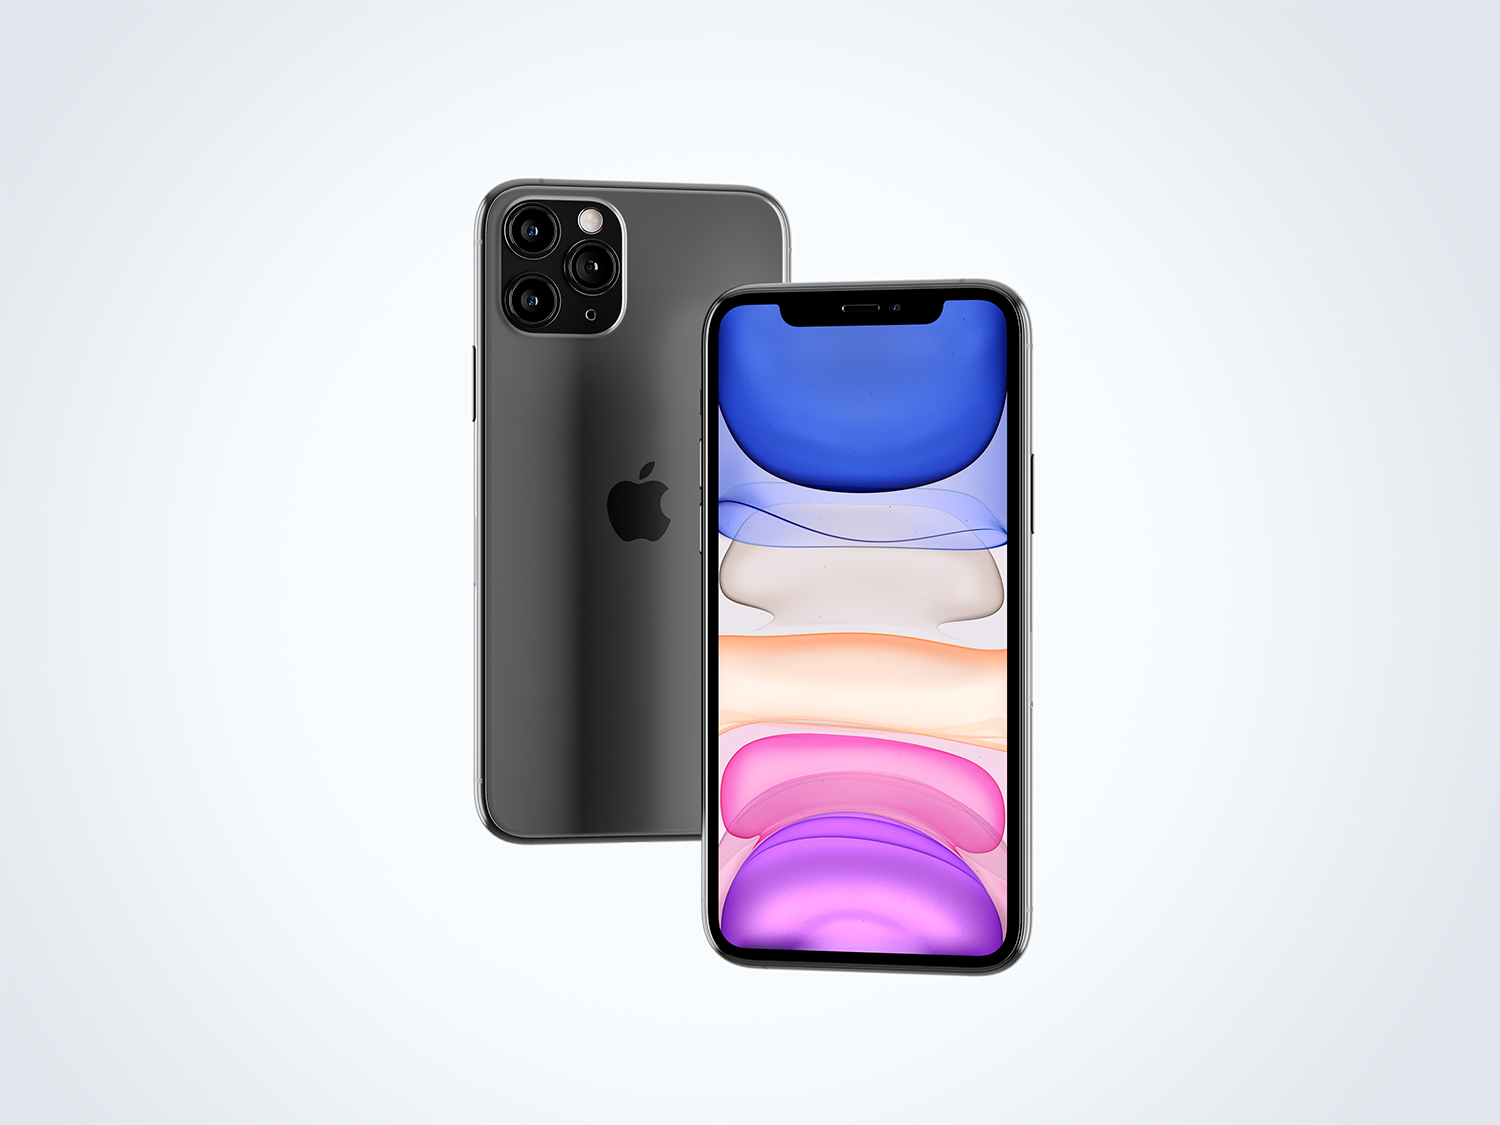 Floating iPhone 11 Pro Max Mockup | Free Mockup